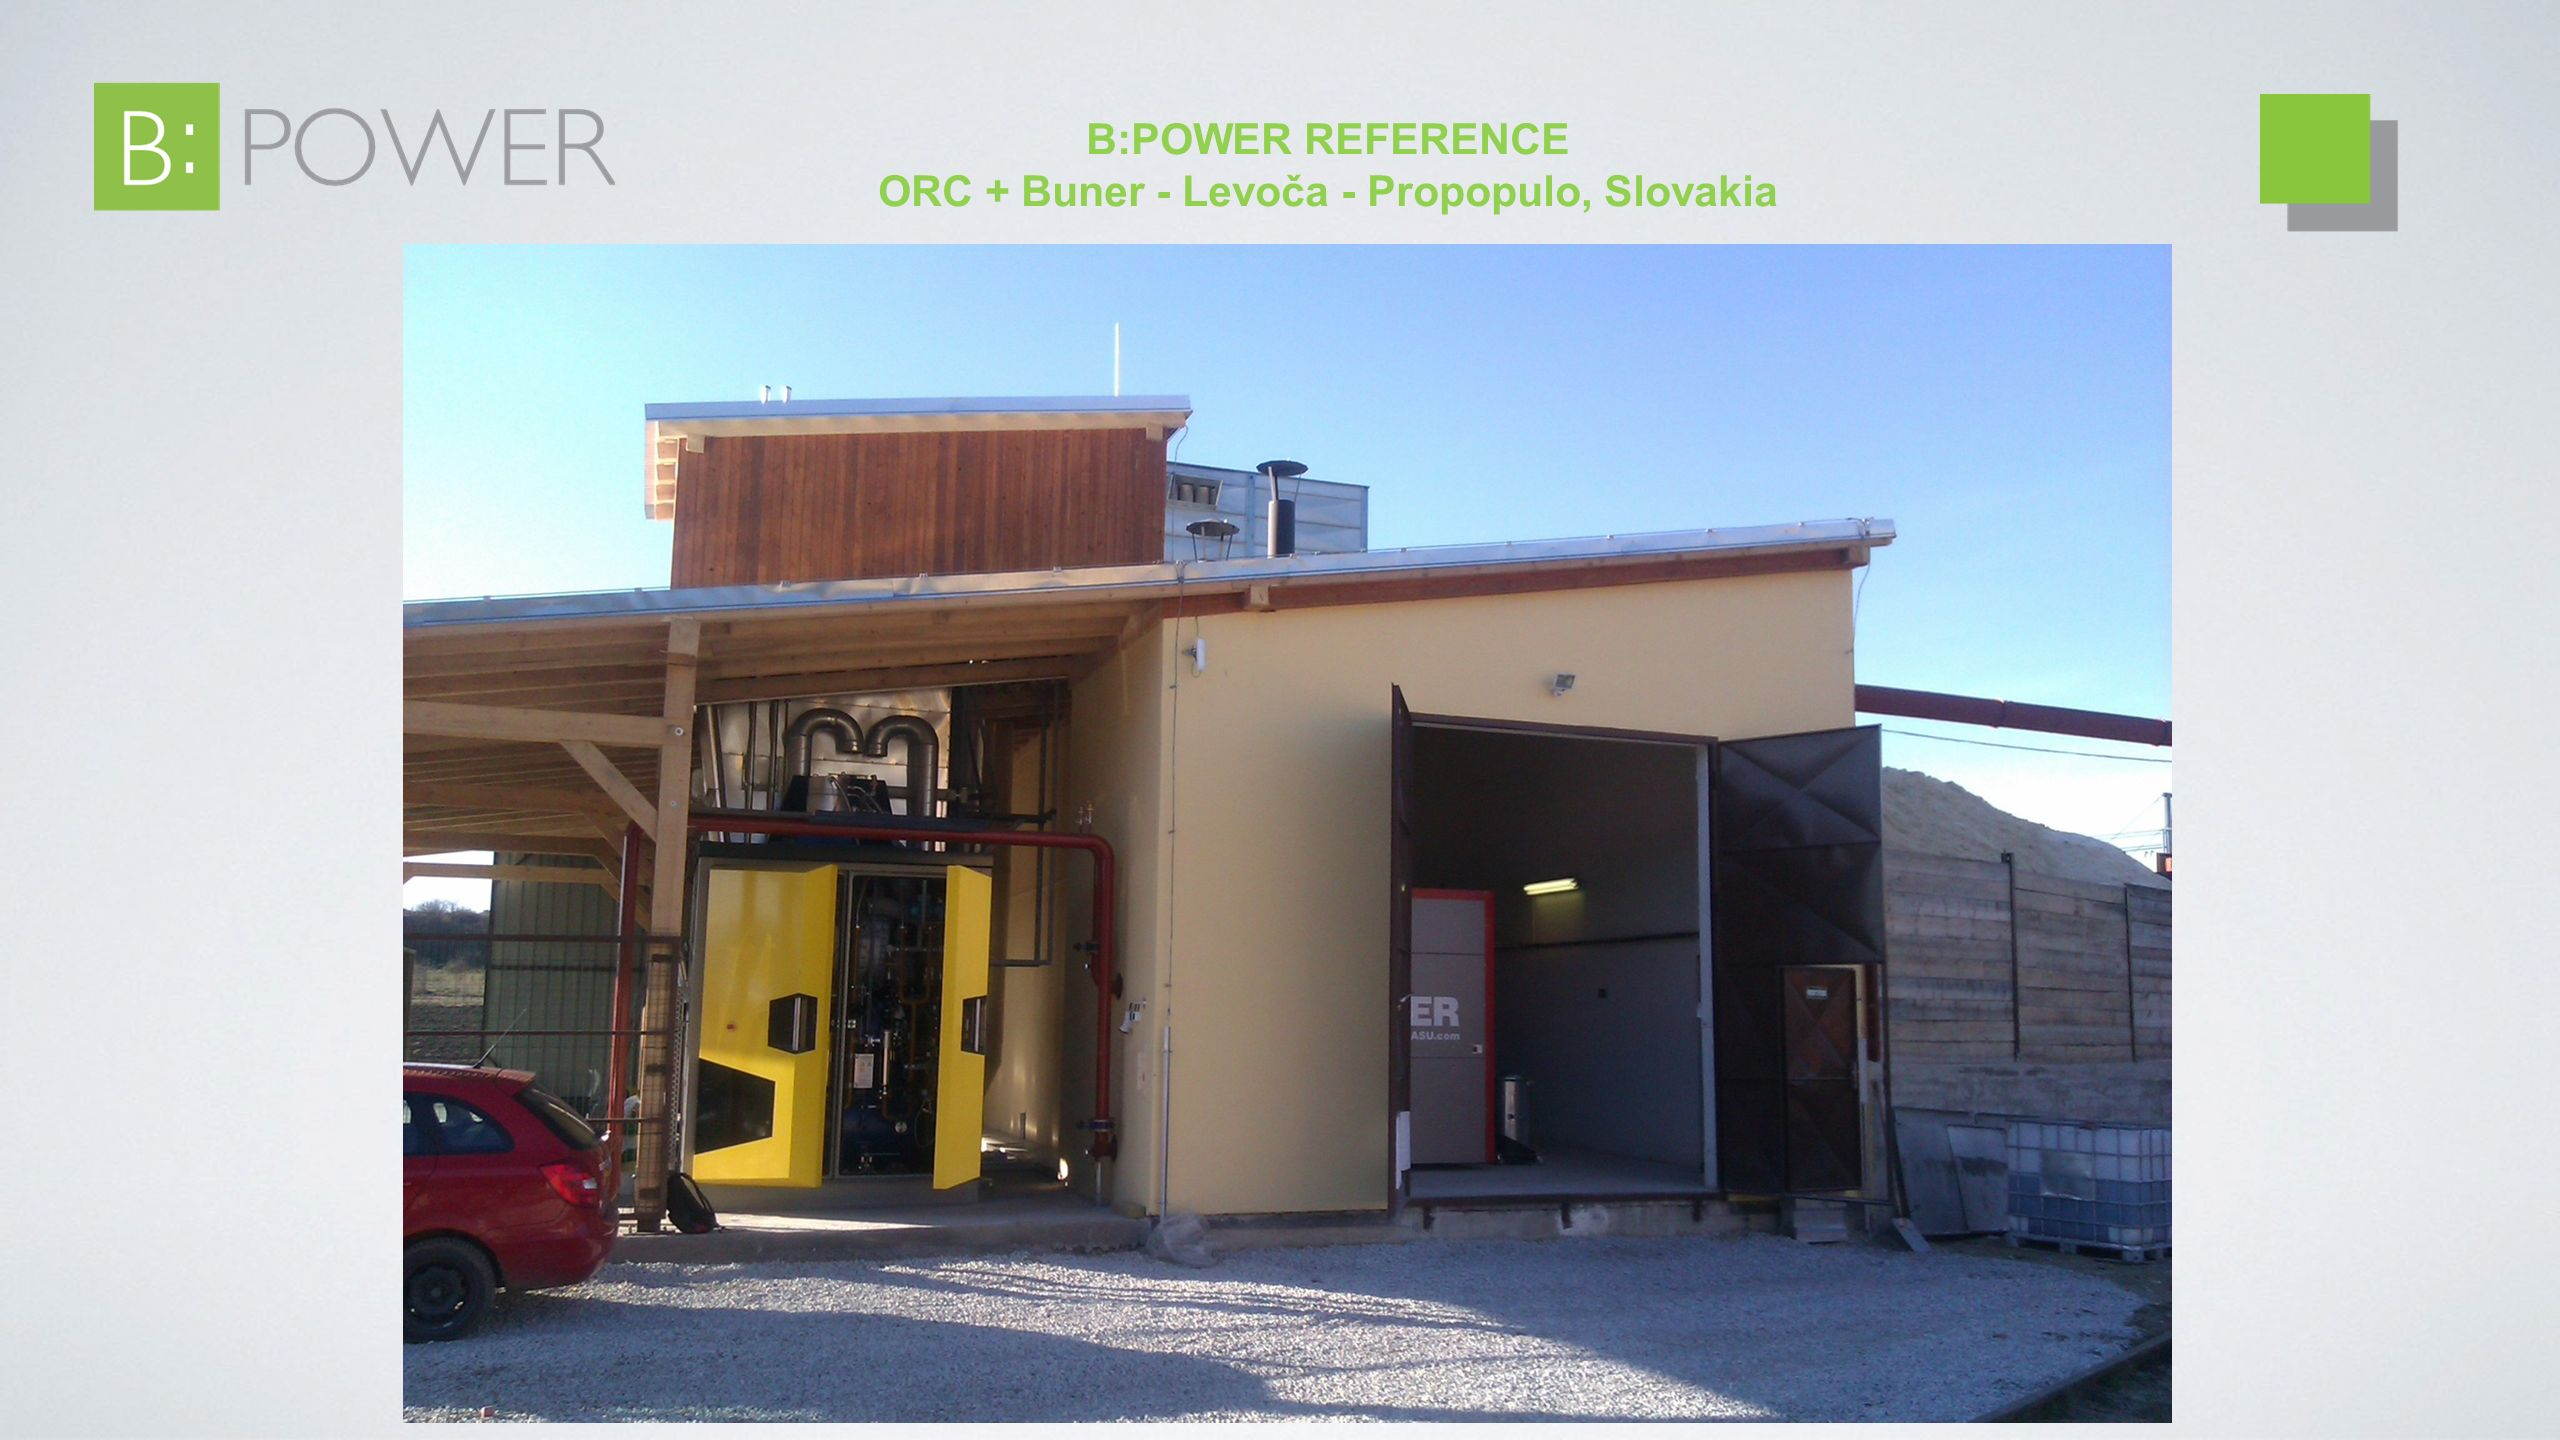 B:POWER REFERENCE ORC + Buner - Levoča - Propopulo, Slovakia